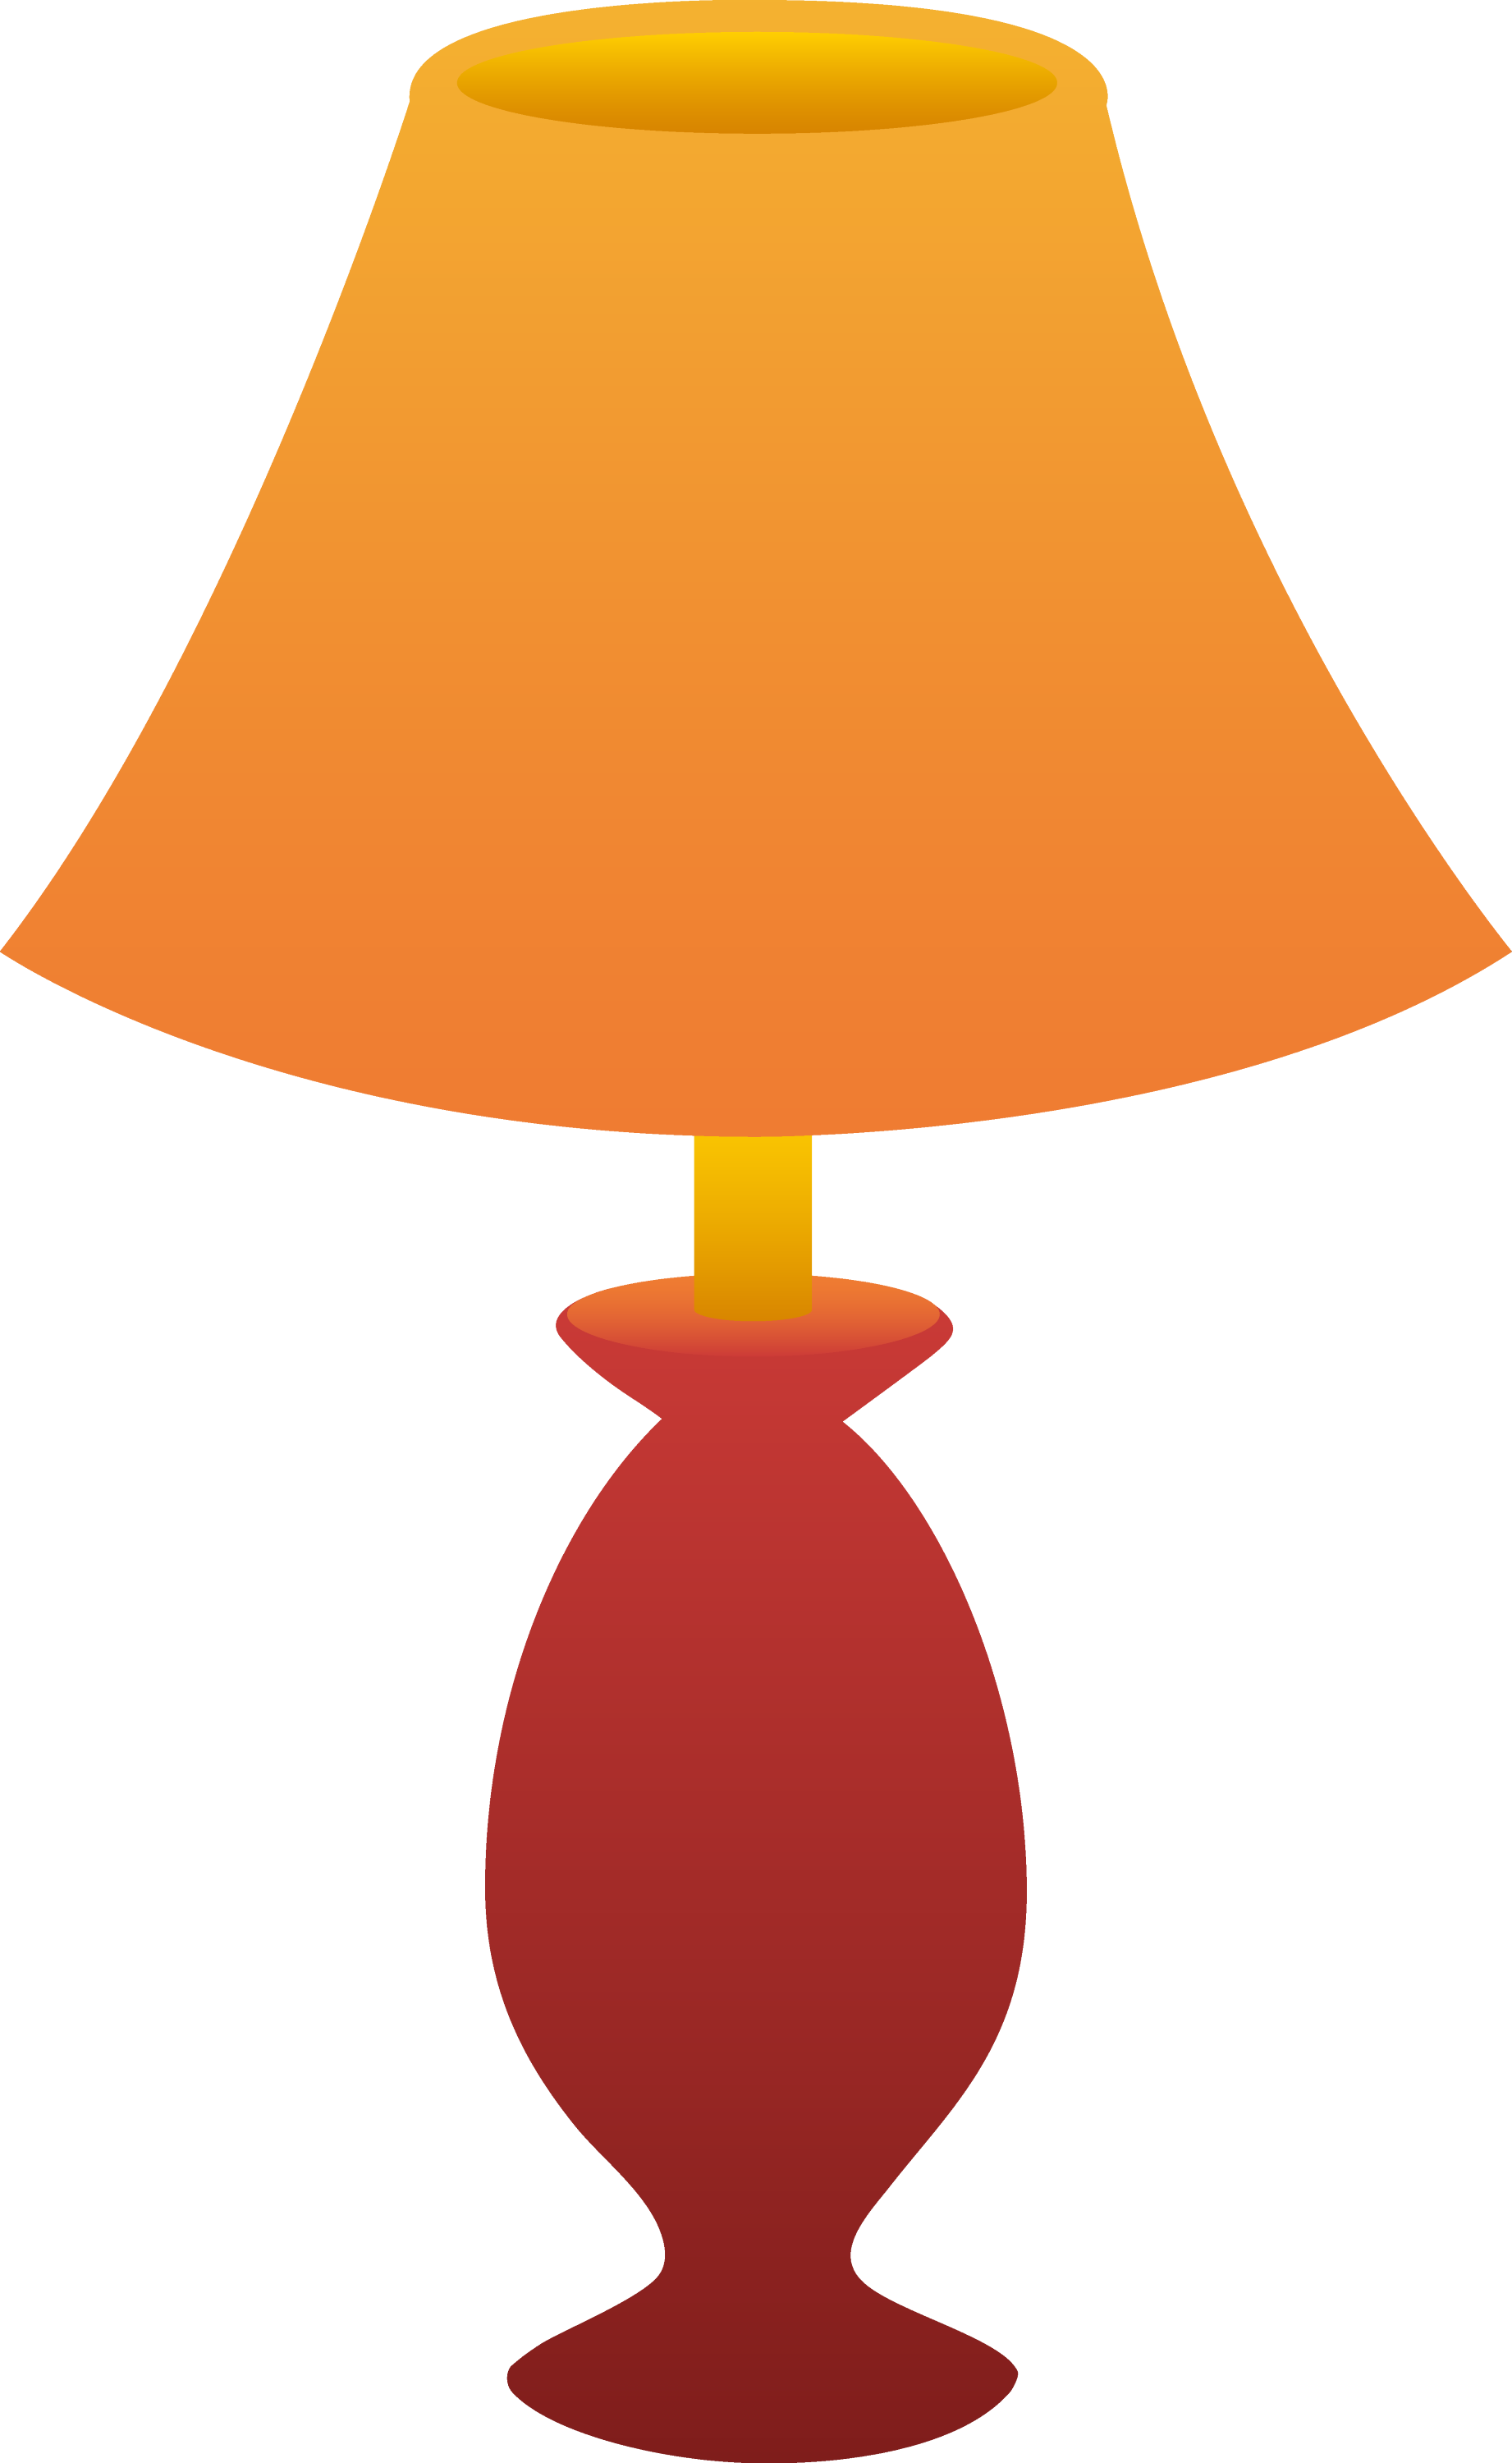 Red Table Lamp - Free Clip Art